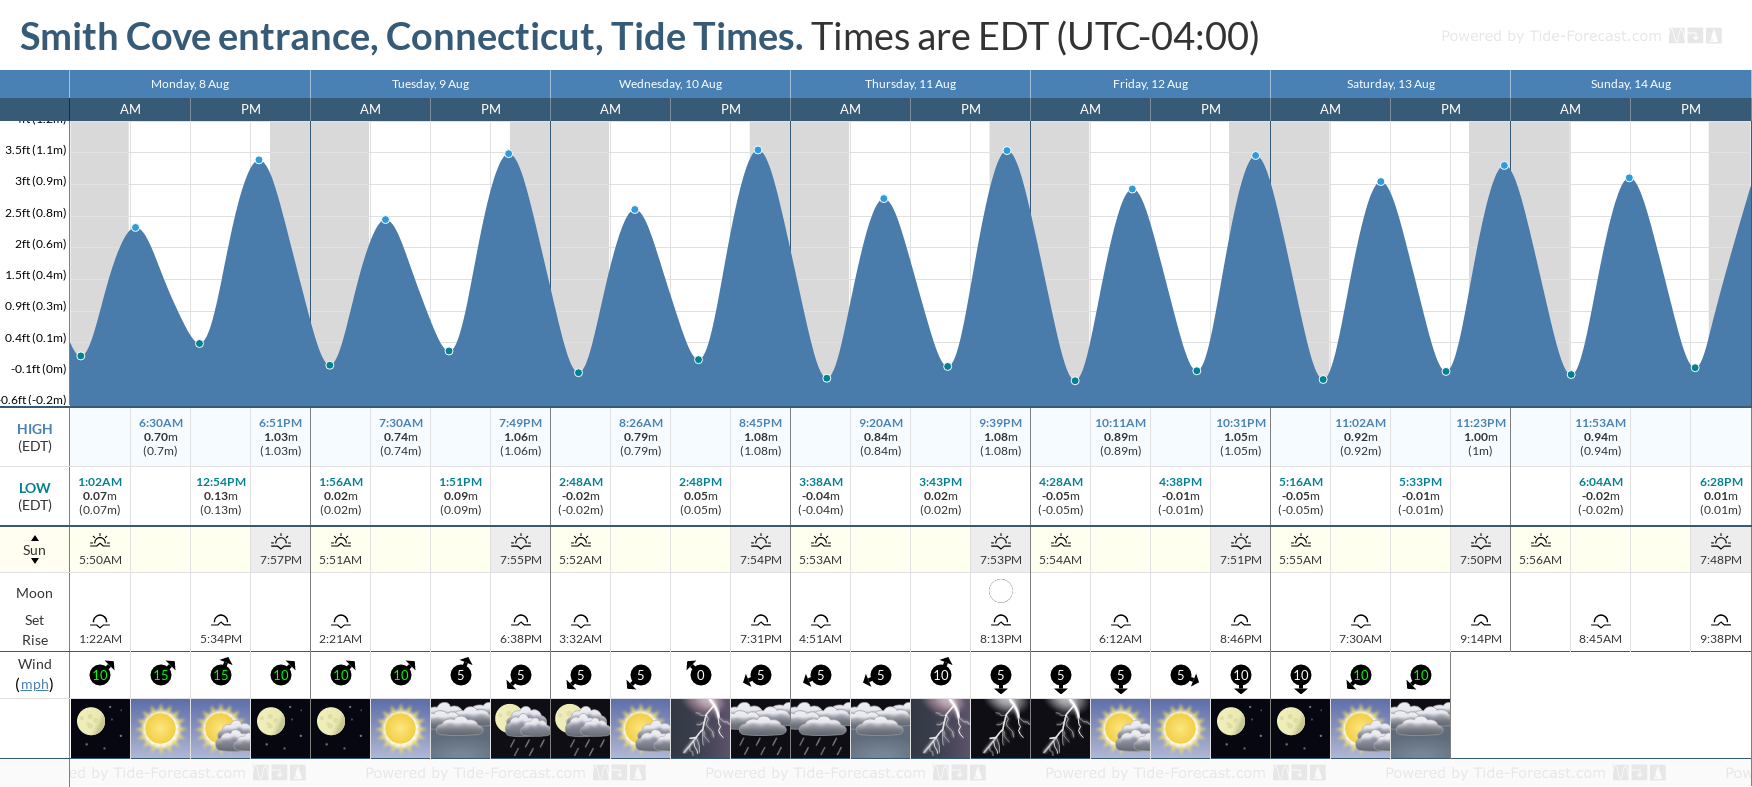 Smith Cove entrance, Connecticut Tide Chart including high and low tide tide times for the next 7 days